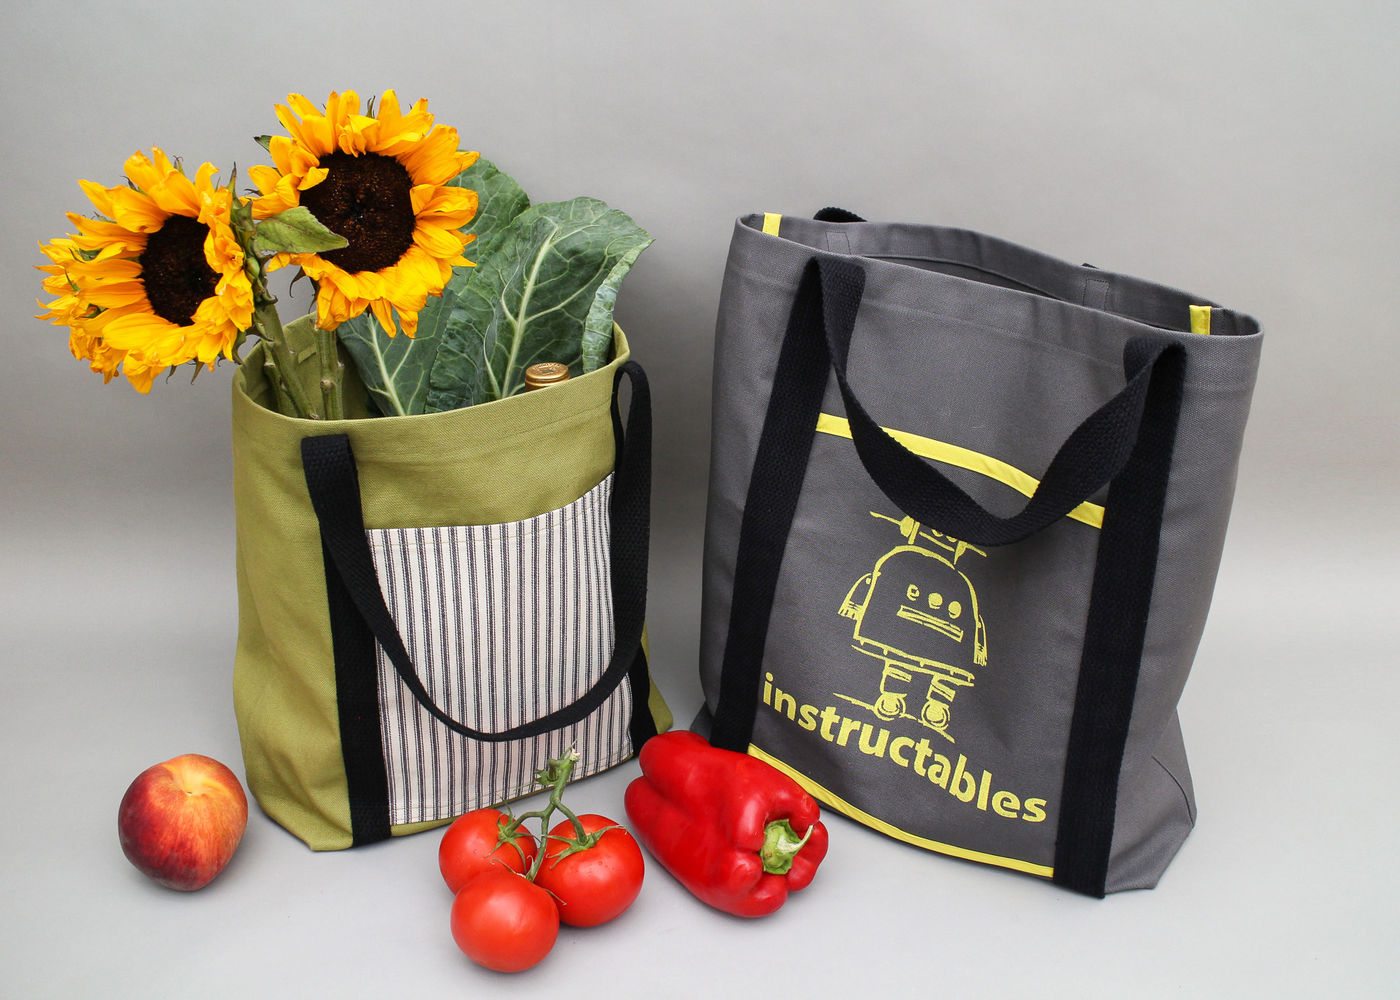 Project: Start a Grocery Bag